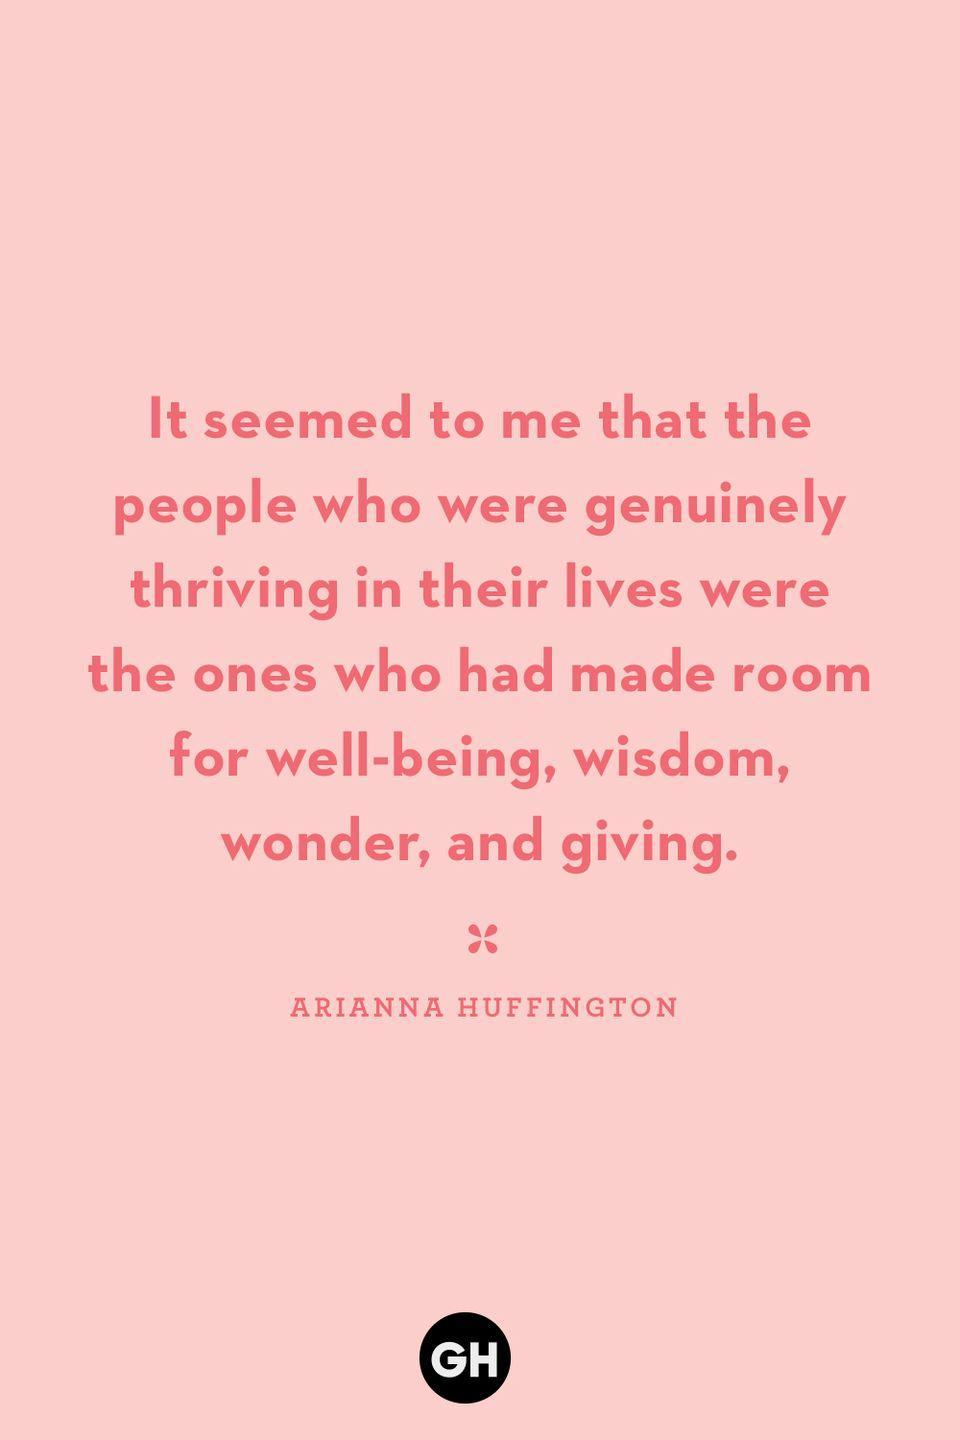 <p>It seemed to me that the people who were genuinely thriving in their lives were the ones who had made room for well-being, wisdom, wonder and giving.</p>